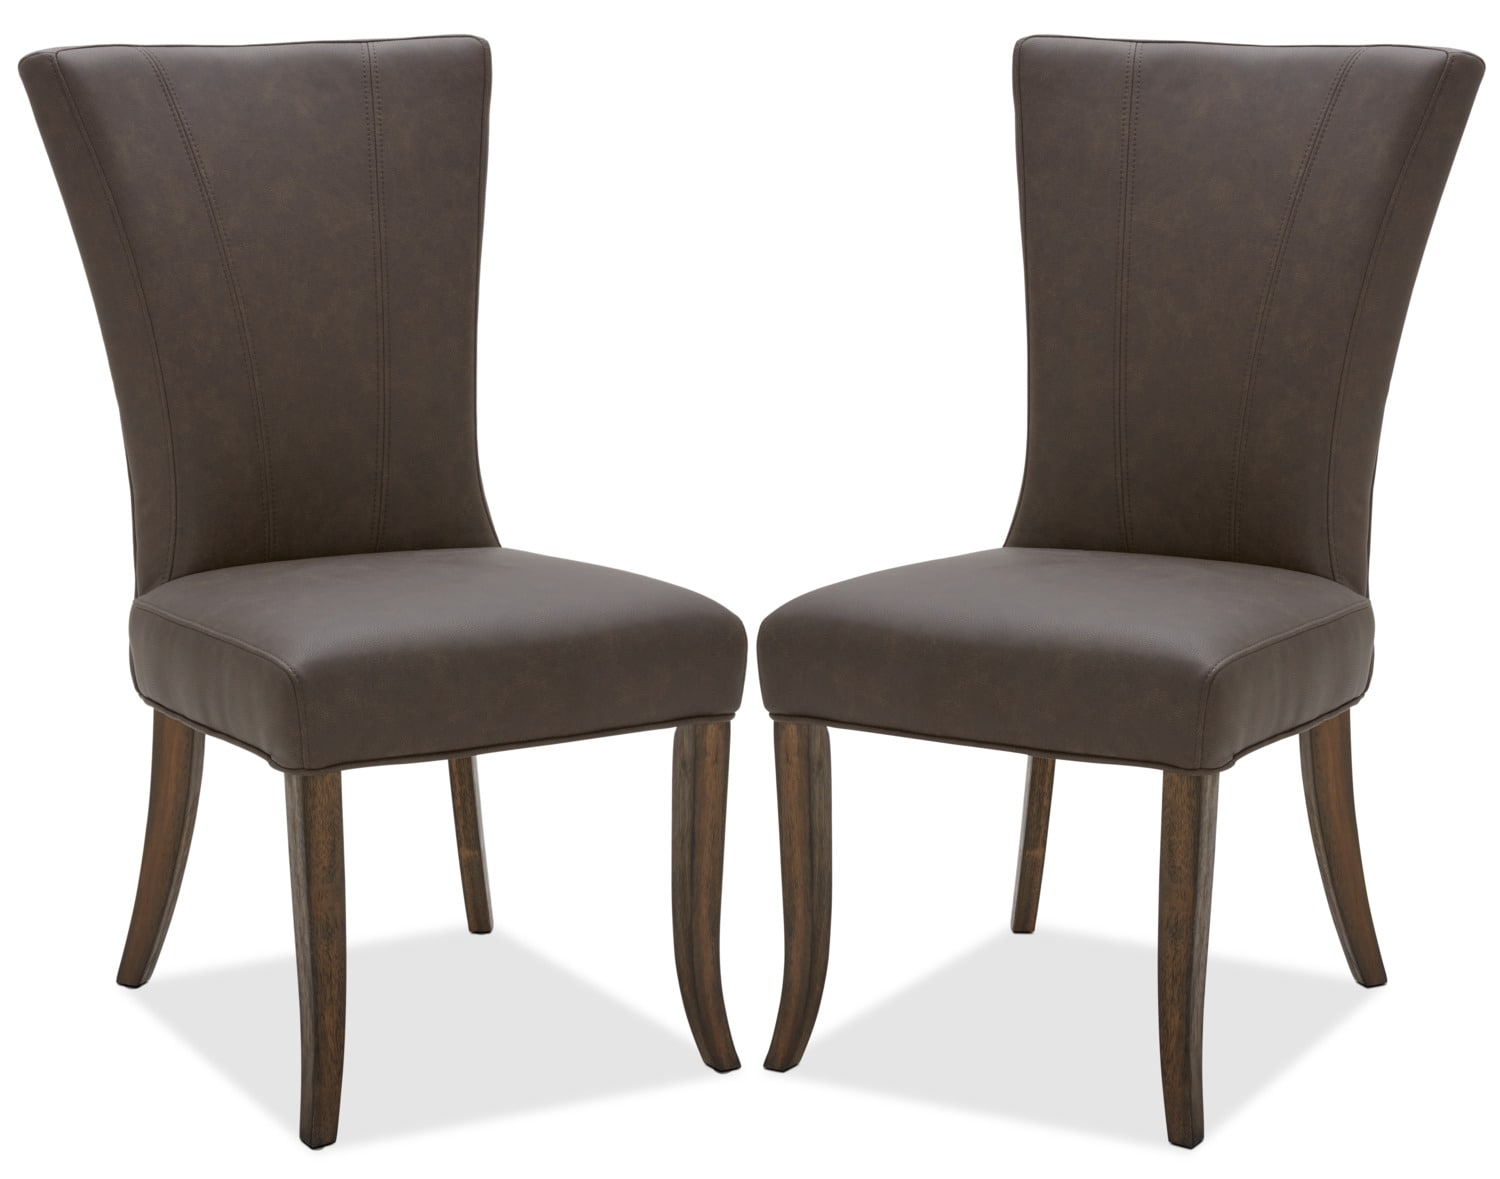 Bree Dining Chair, Set of 2 – Brown